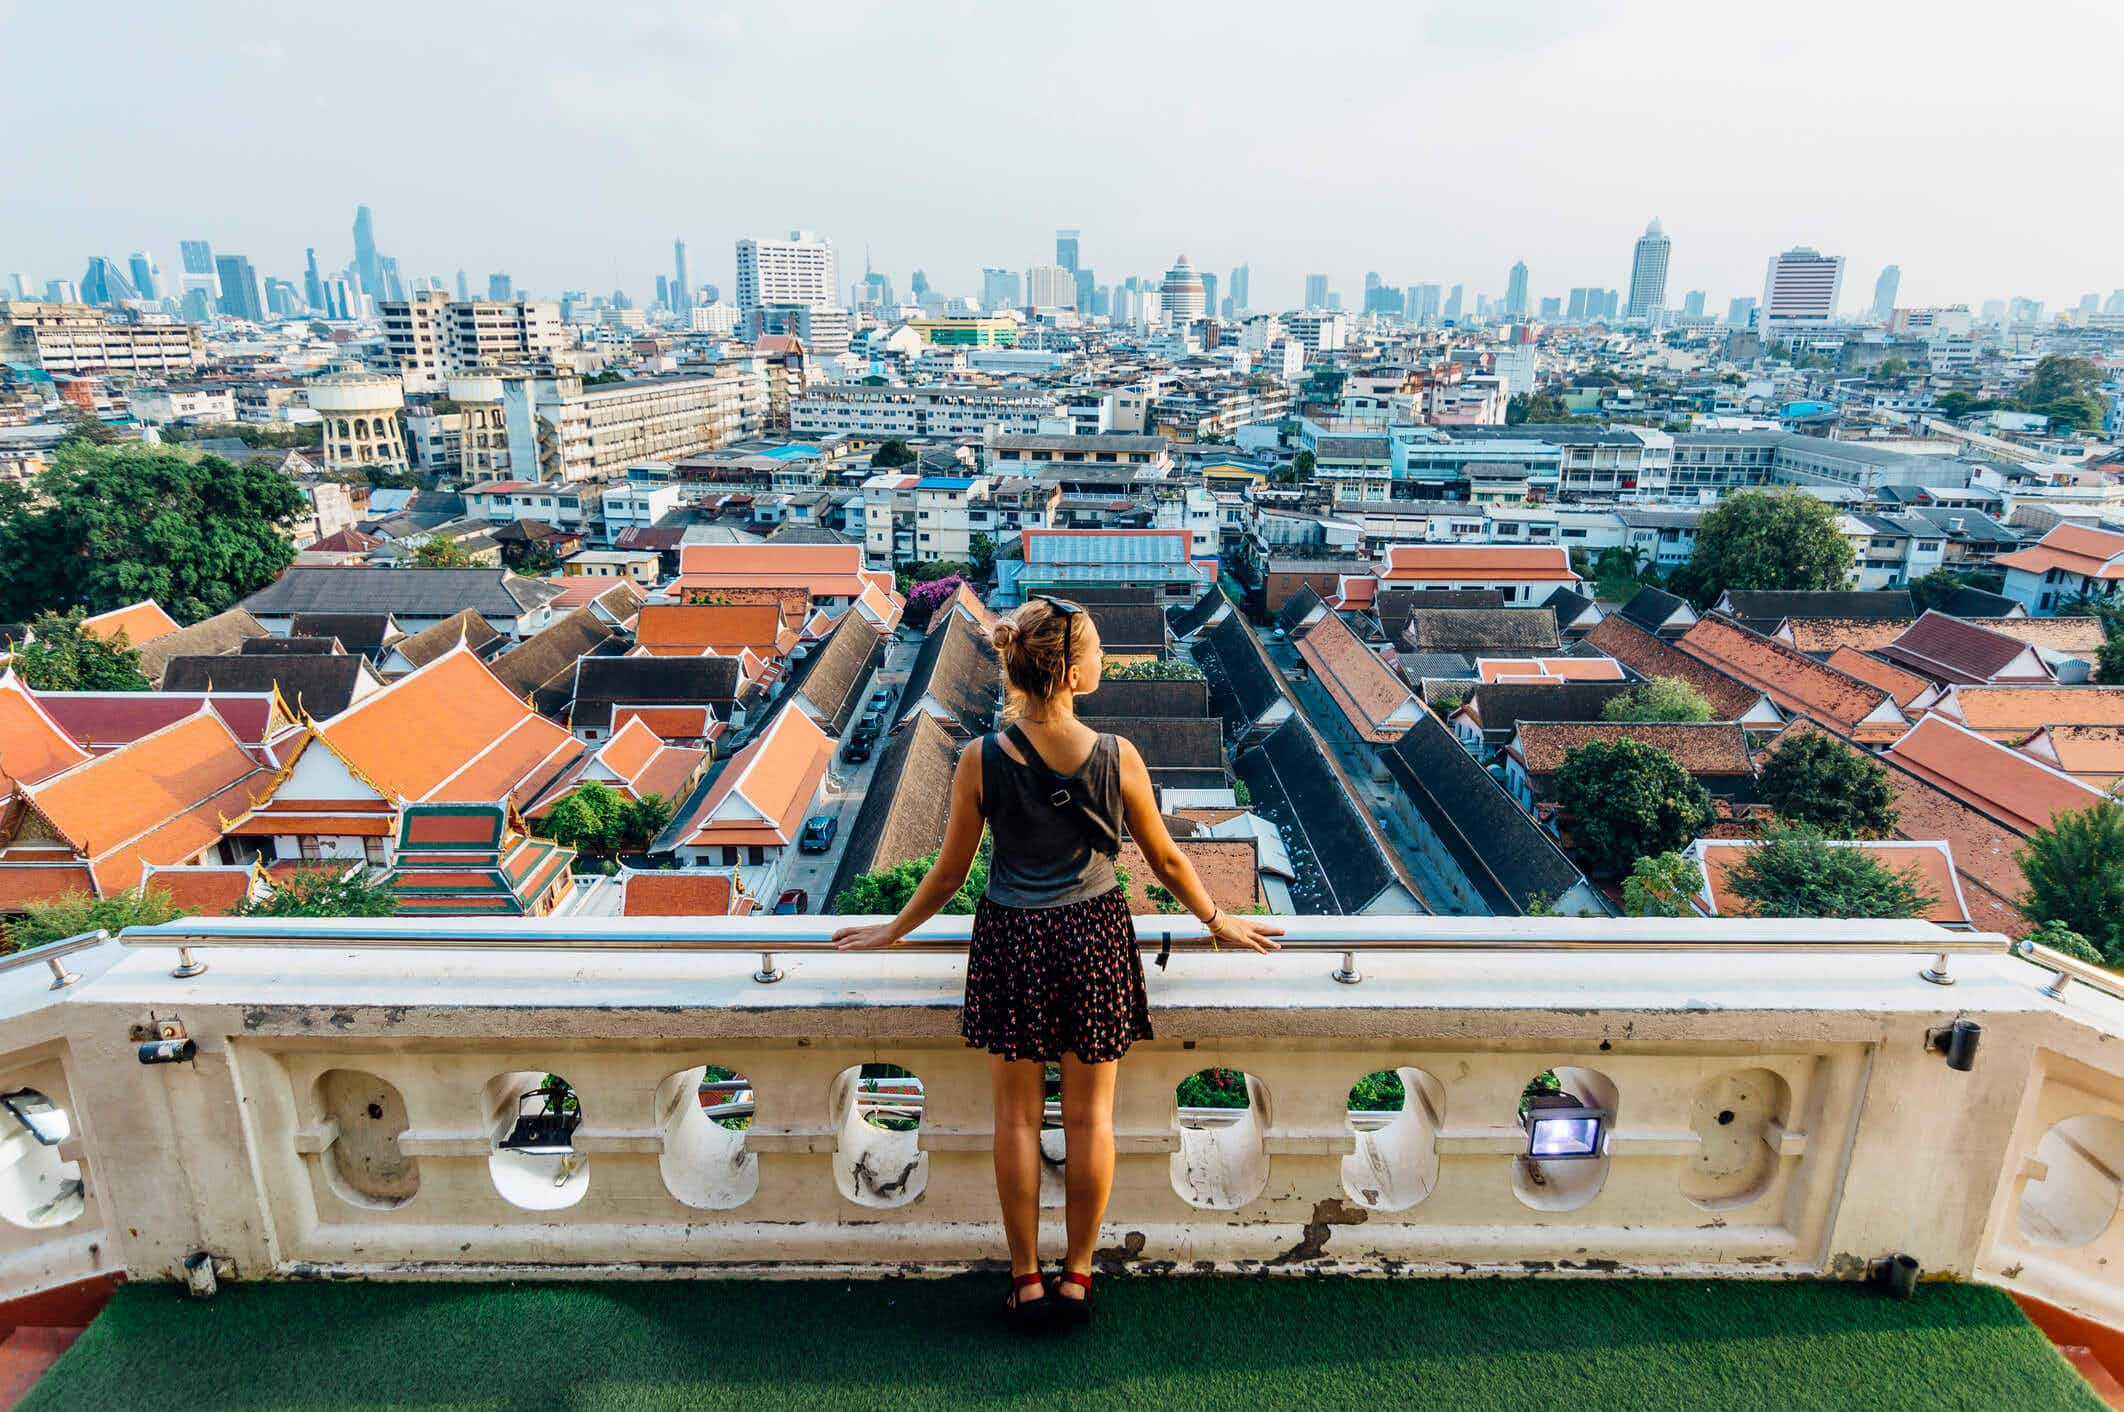 US millennial travelers prefer hotels over Airbnb, new research suggests